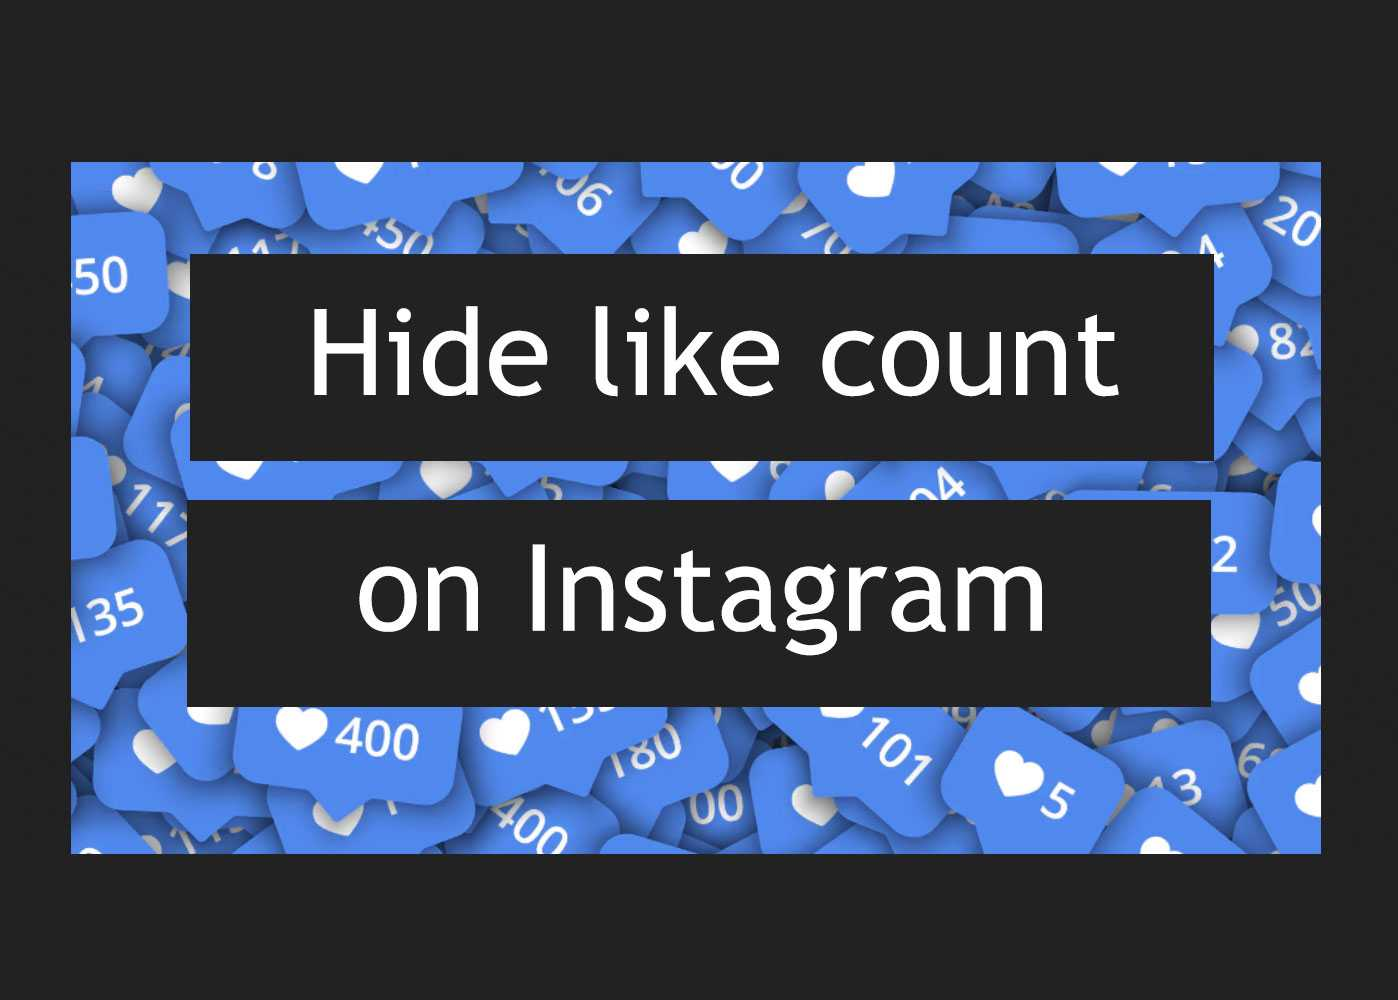 How to hide like count on Instagram